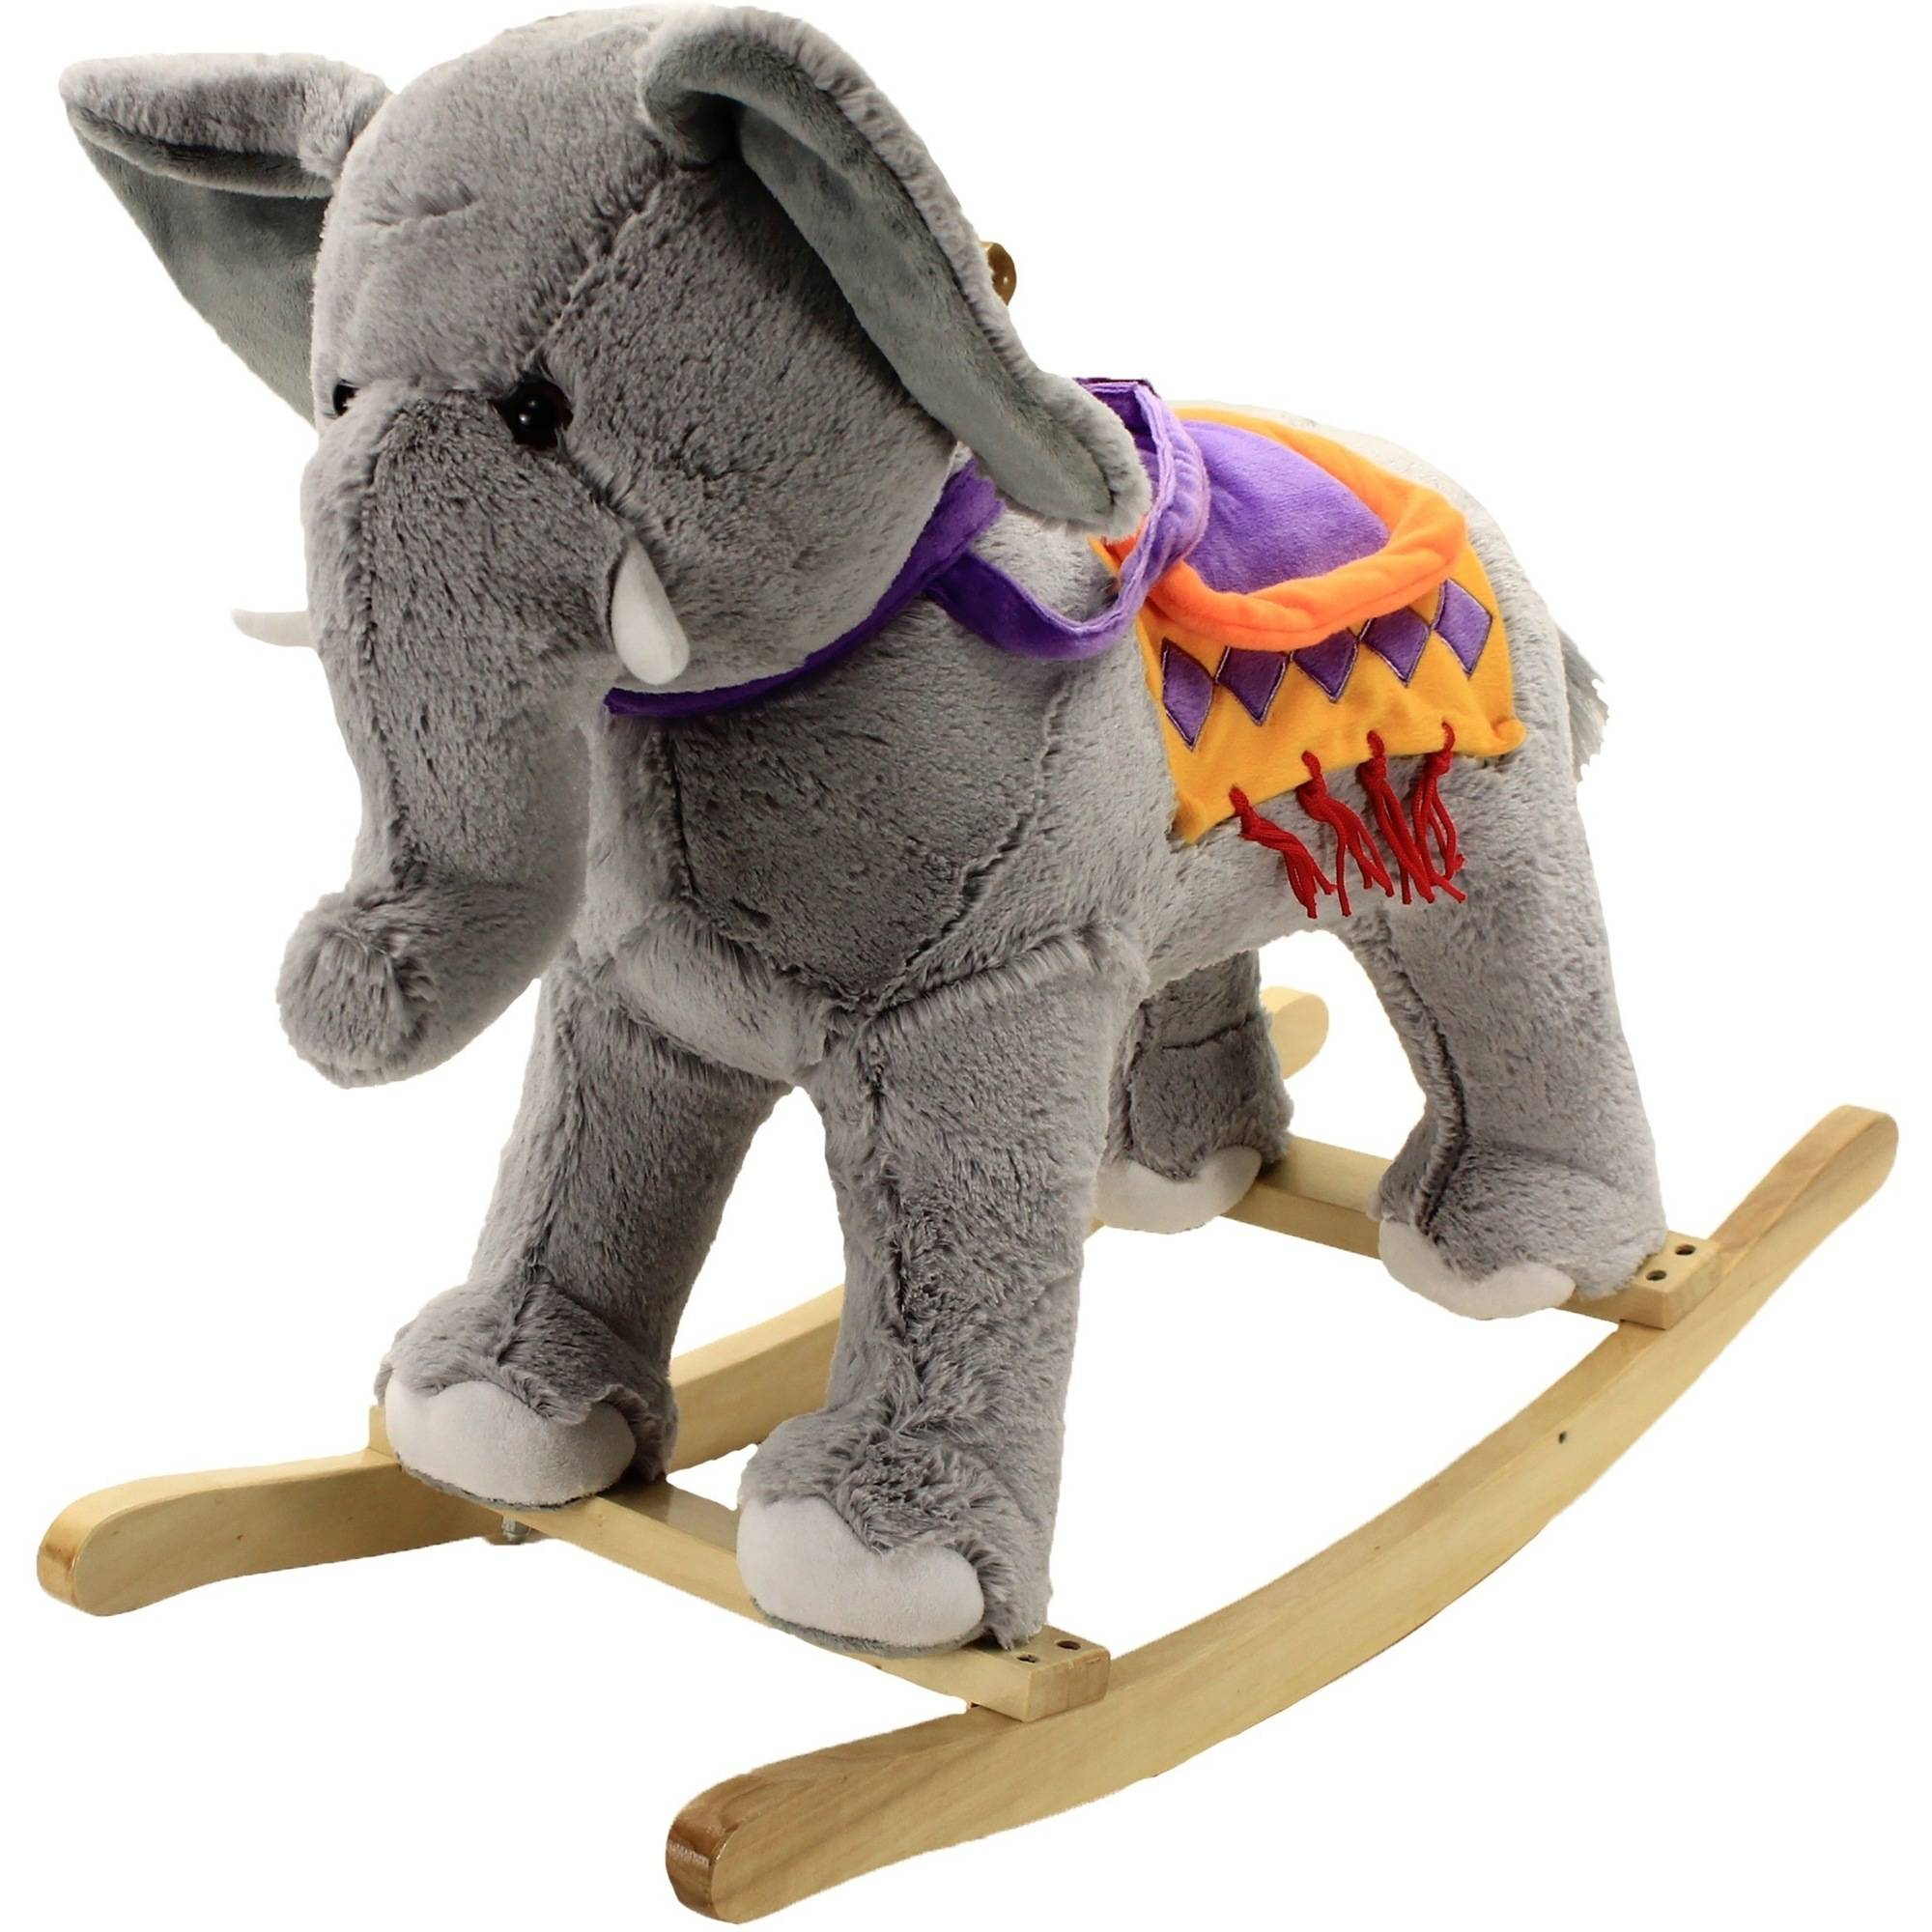 Animal Adventure Circus Rocker, Elephant by